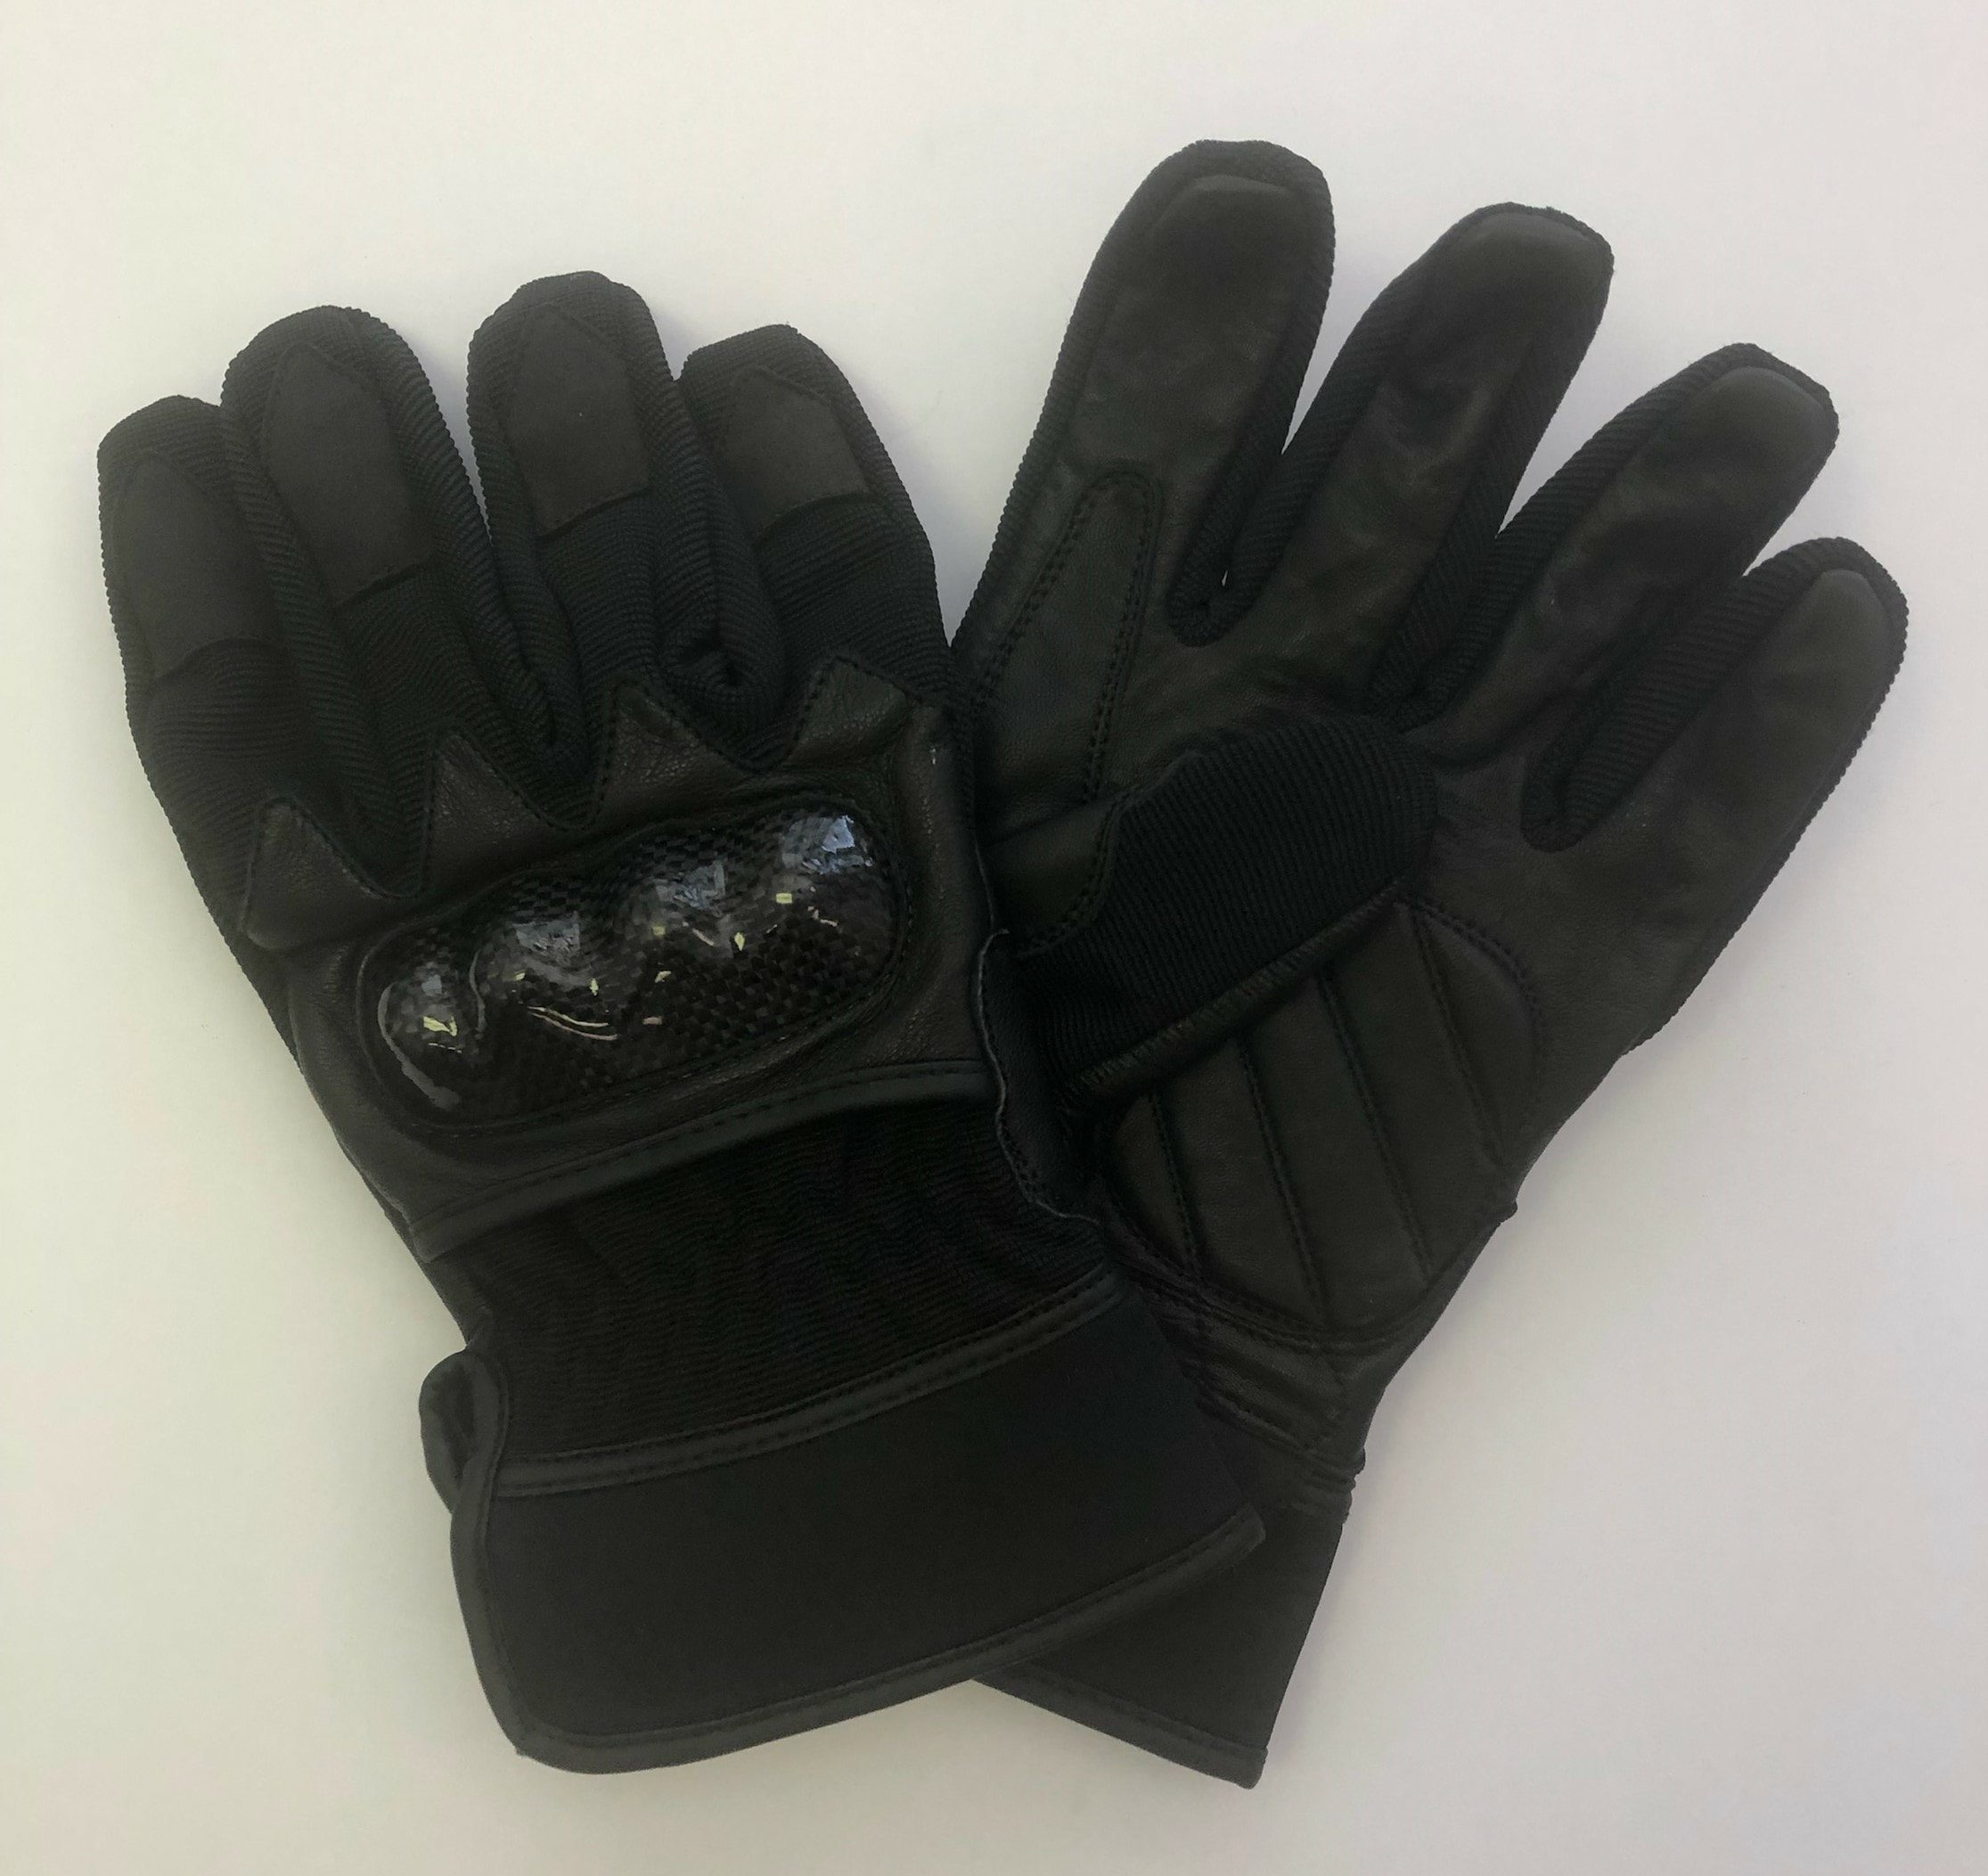 Leather Textured Motorcycle Gloves